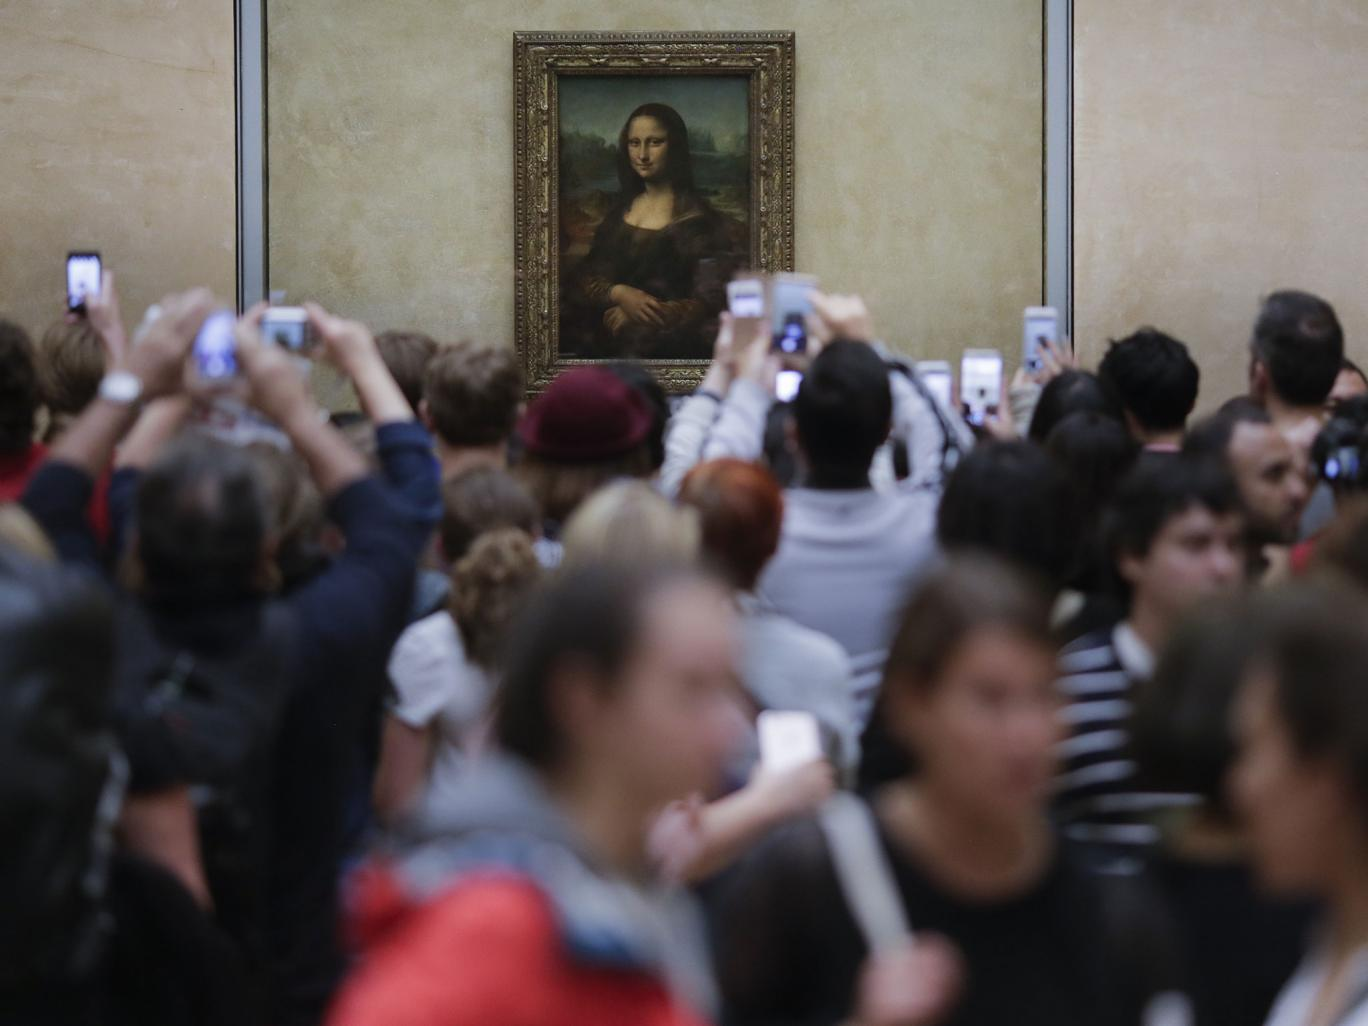 Paris shuts Louvre museum to protect priceless artworks as flood waters rise